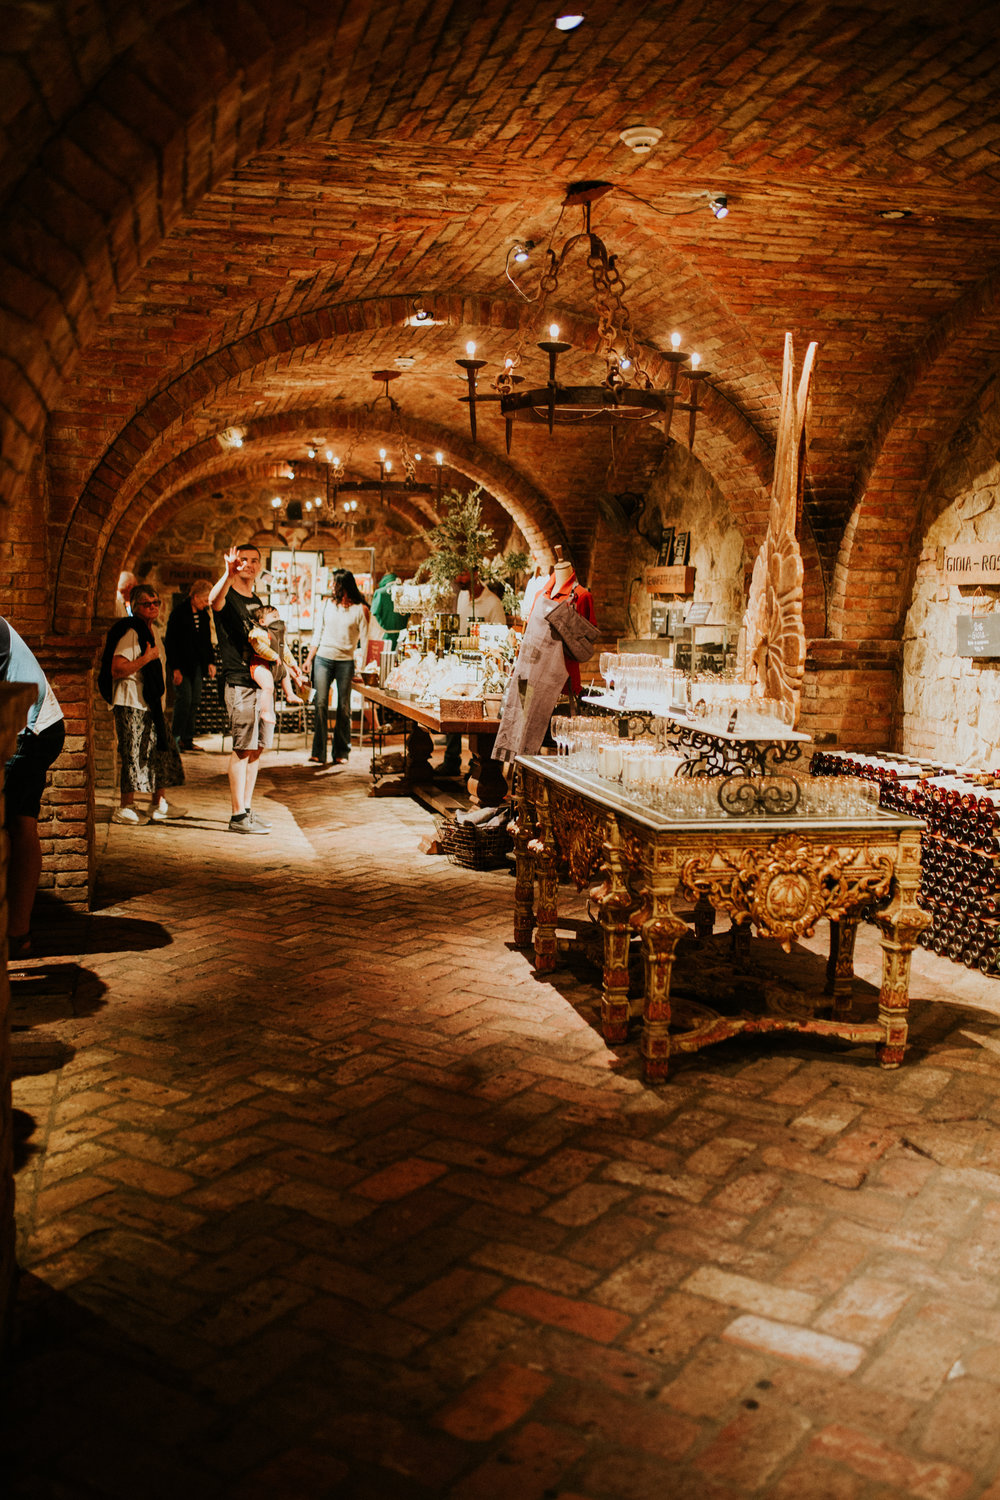 Have you tried wine tasting in a dungeon?